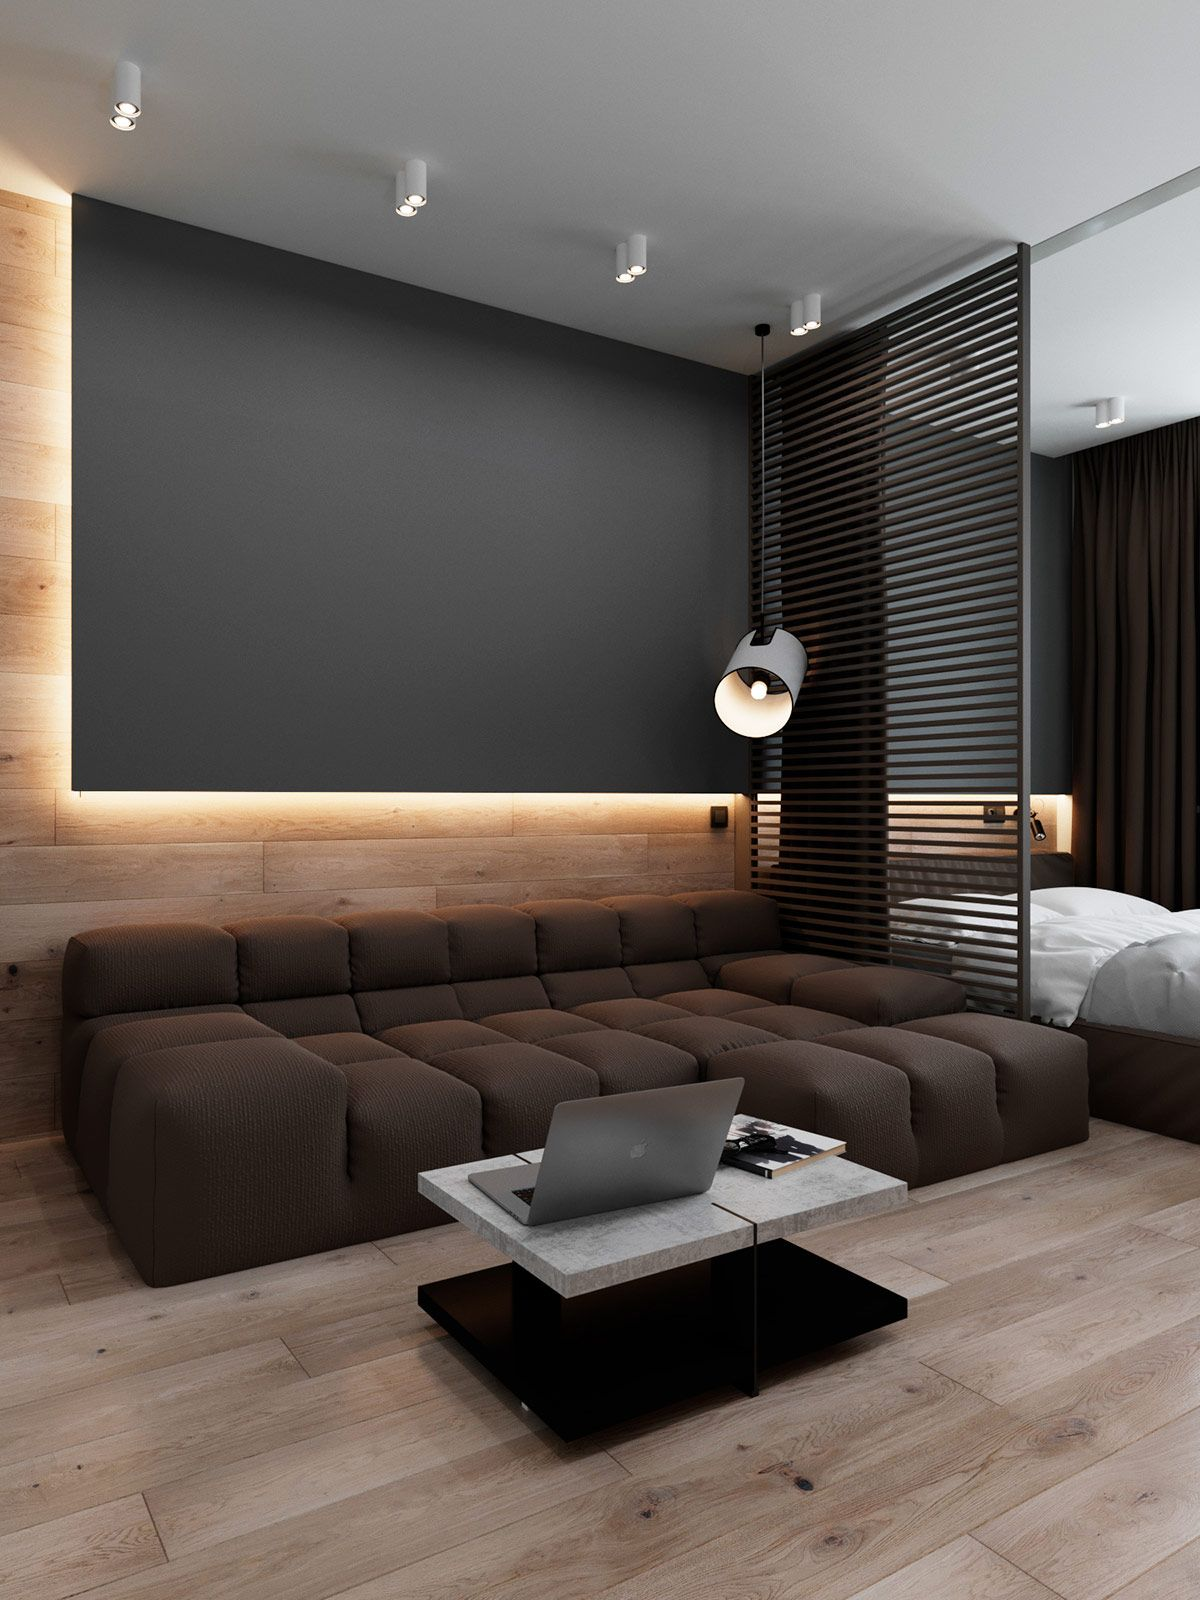 3 Luxury Apartments With Open Plan Bedroom Ideas is part of Luxury Apartments With Open Plan Bedroom Ideas - Luxury studio apartment layouts with three different open plan bedroom ideas see a glass wall bedroom, bedroom screen, and a sleeping capsule with portiere